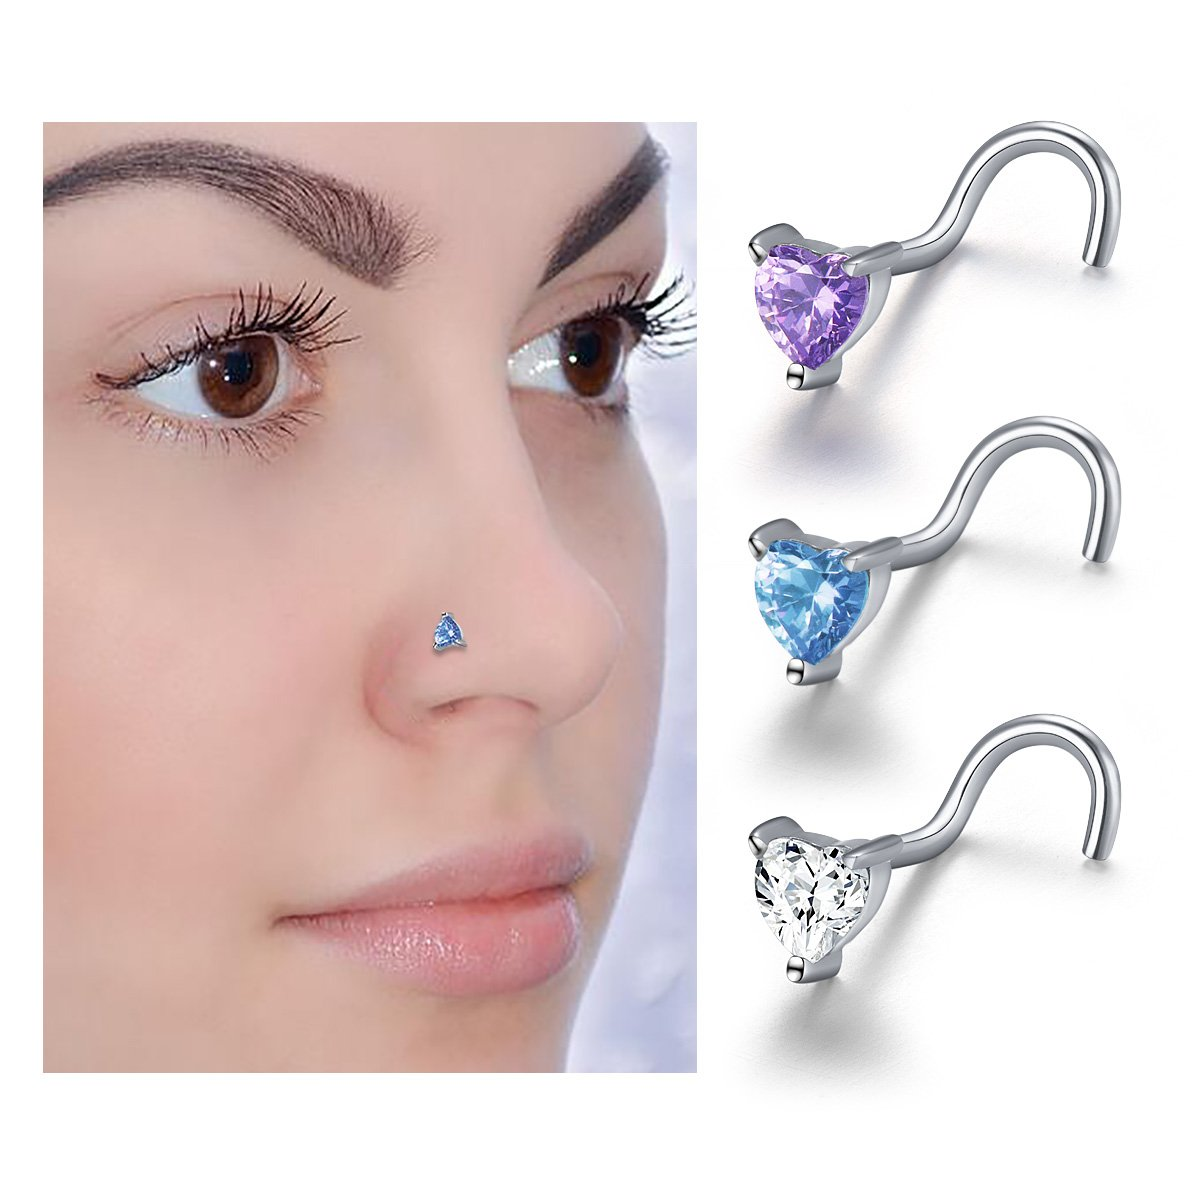 Body Jewelry S925 Sterling Silver Nose Hoop Ring 8mm (CZ heart 3 pieces)